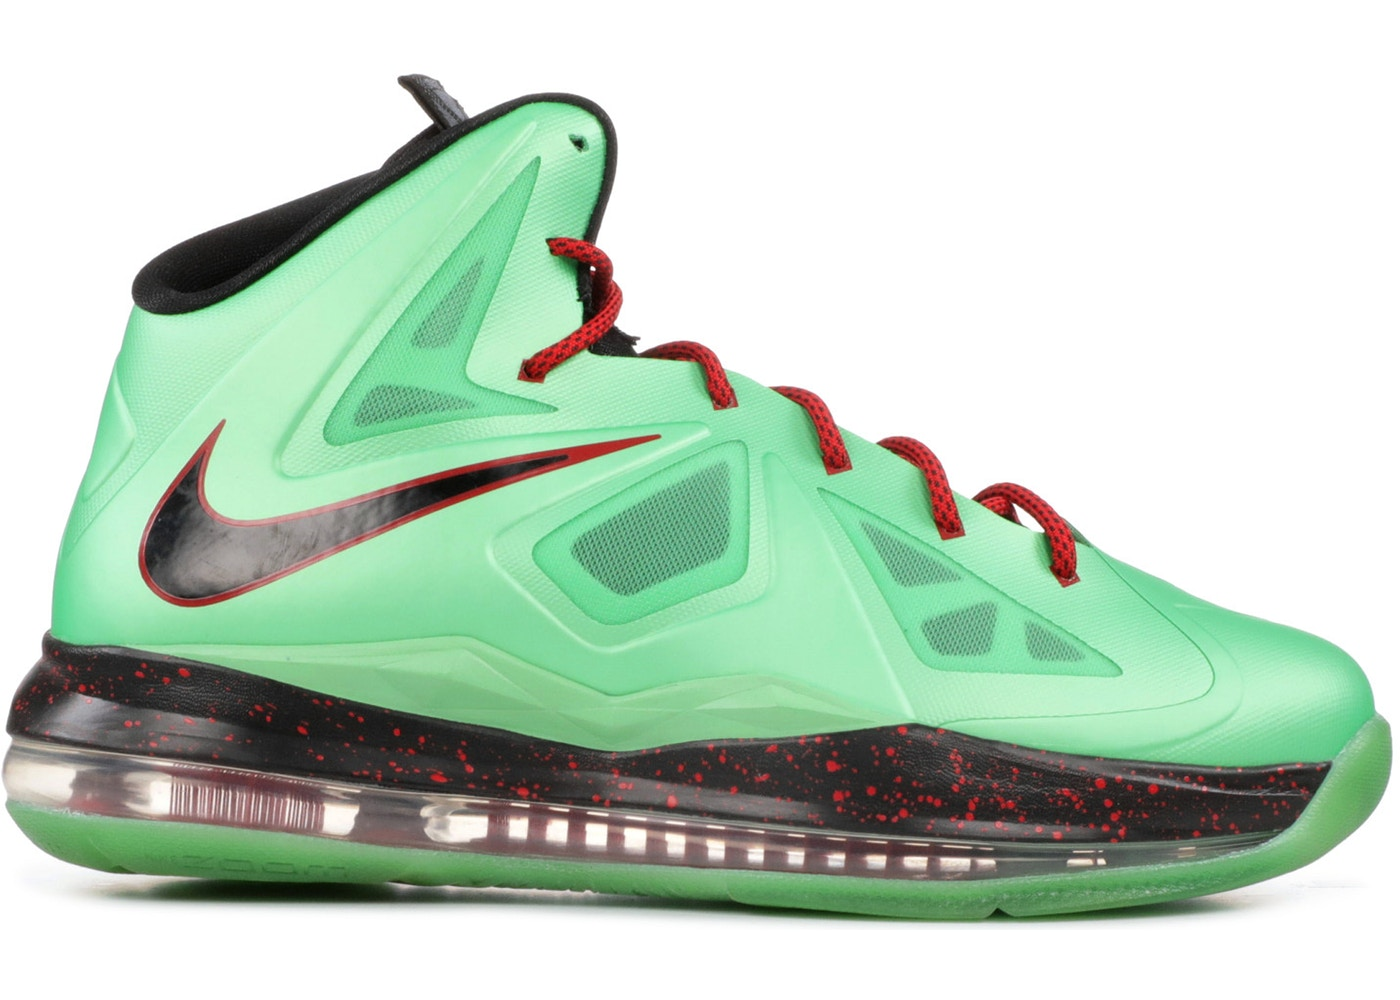 competitive price 94336 630f4 Buy Nike LeBron 10 Shoes   Deadstock Sneakers